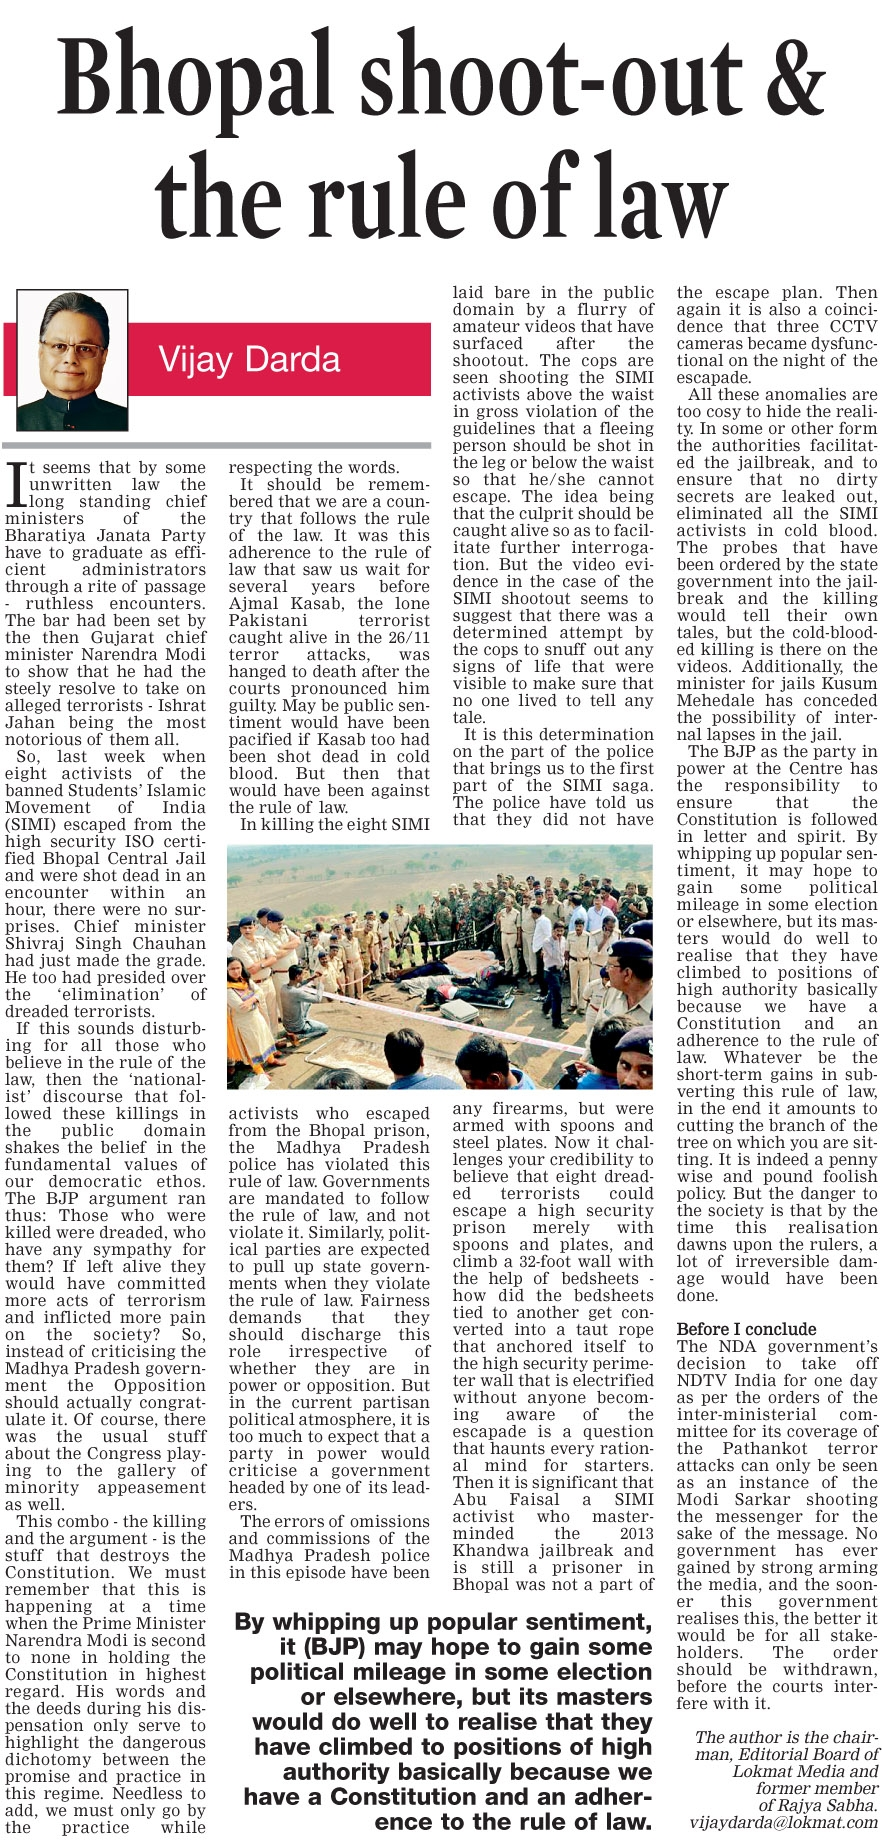 Bhopal shoot-out & the rule of law